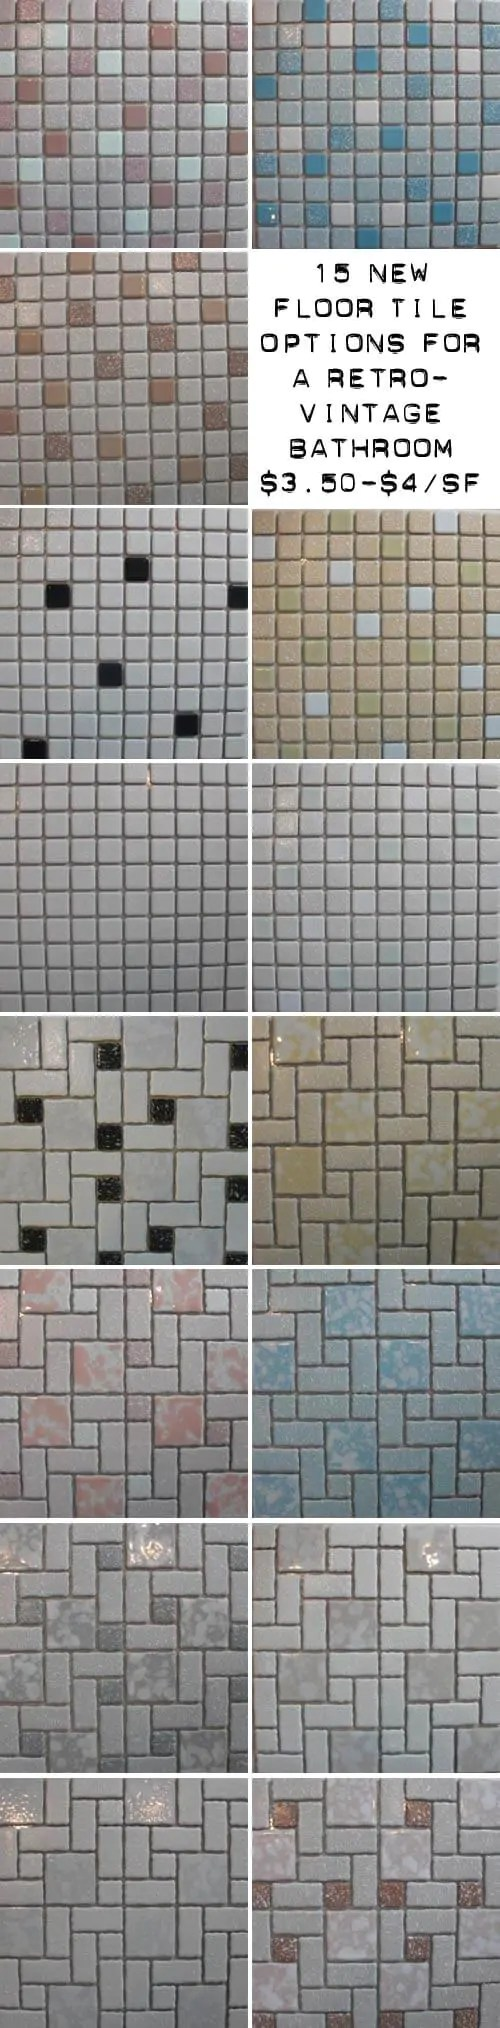 15 new mosaic floor tile designs for a